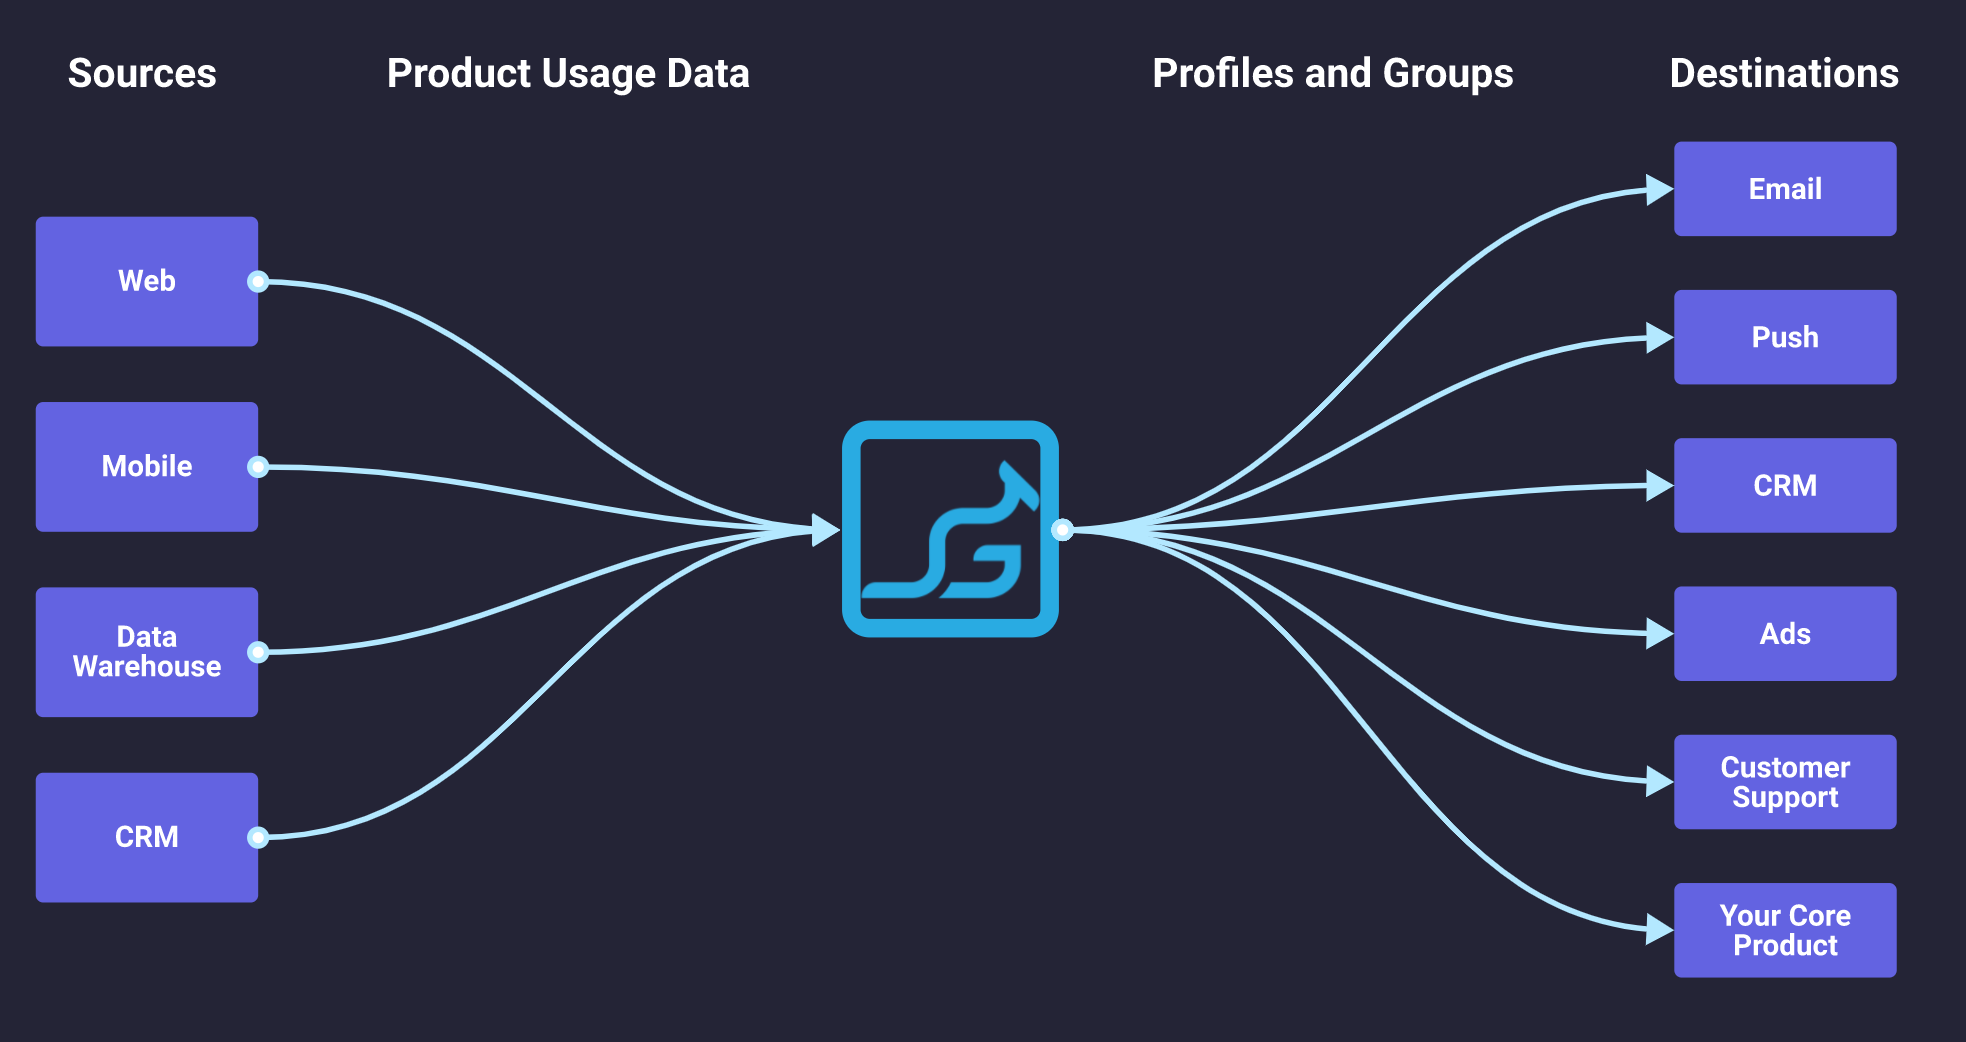 Grouparoo sources and destination connections